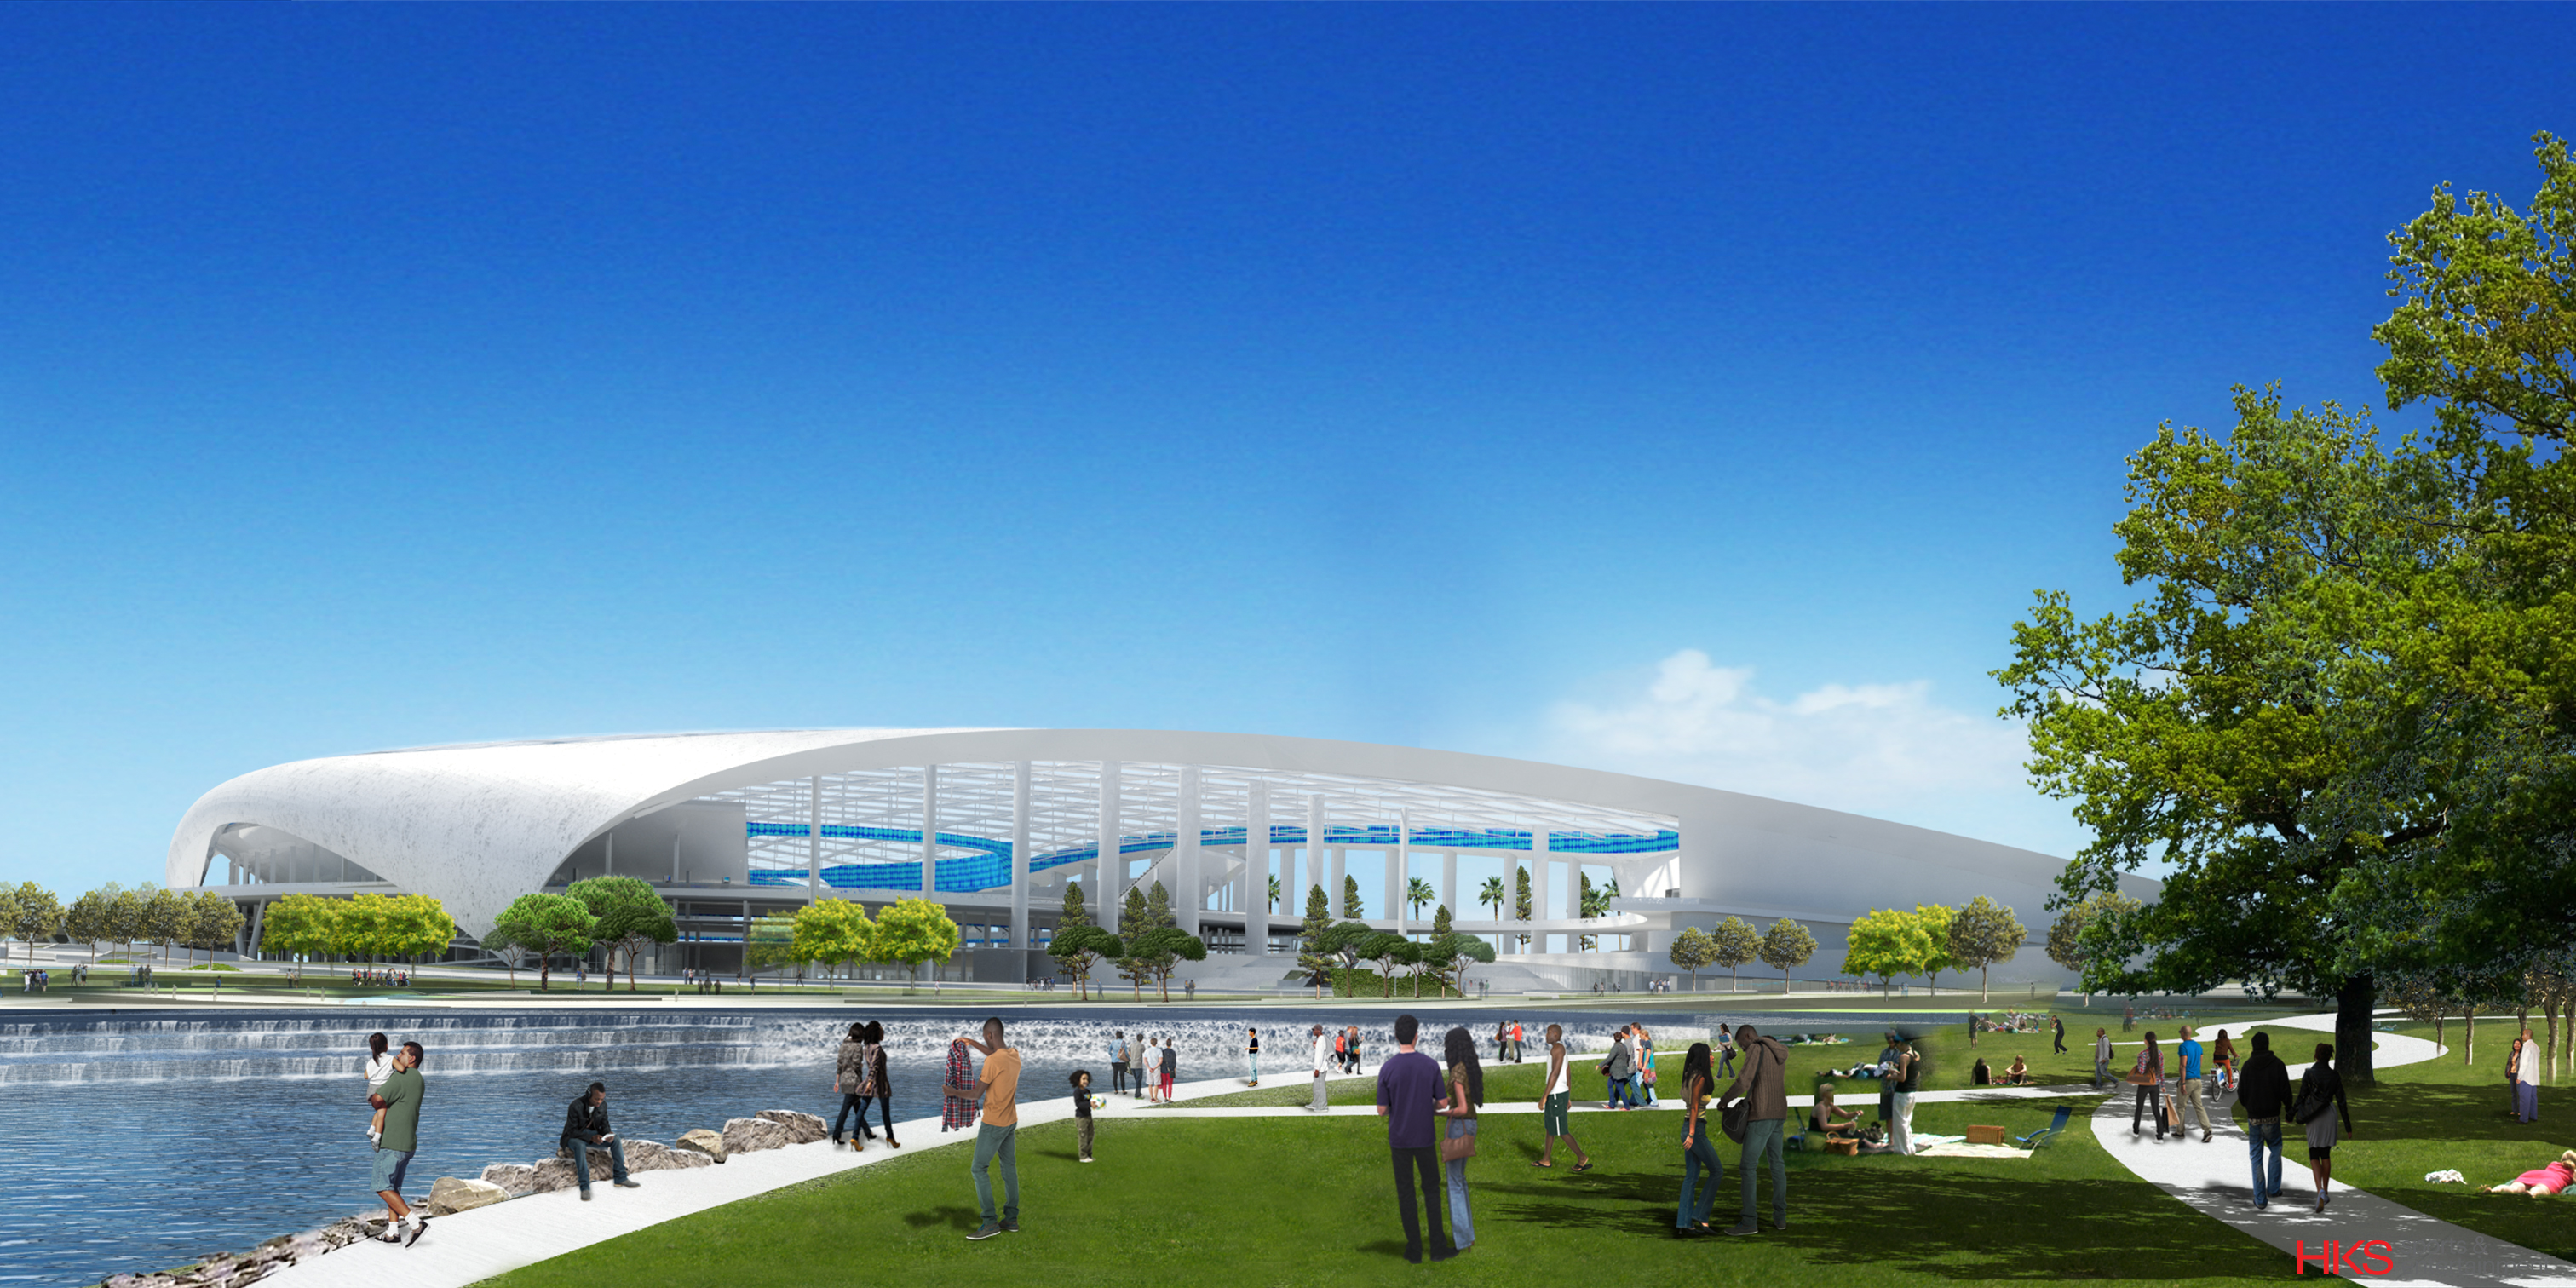 New La Rams Stadium In Inglewood To Be World S Most Expensive Cnn Style